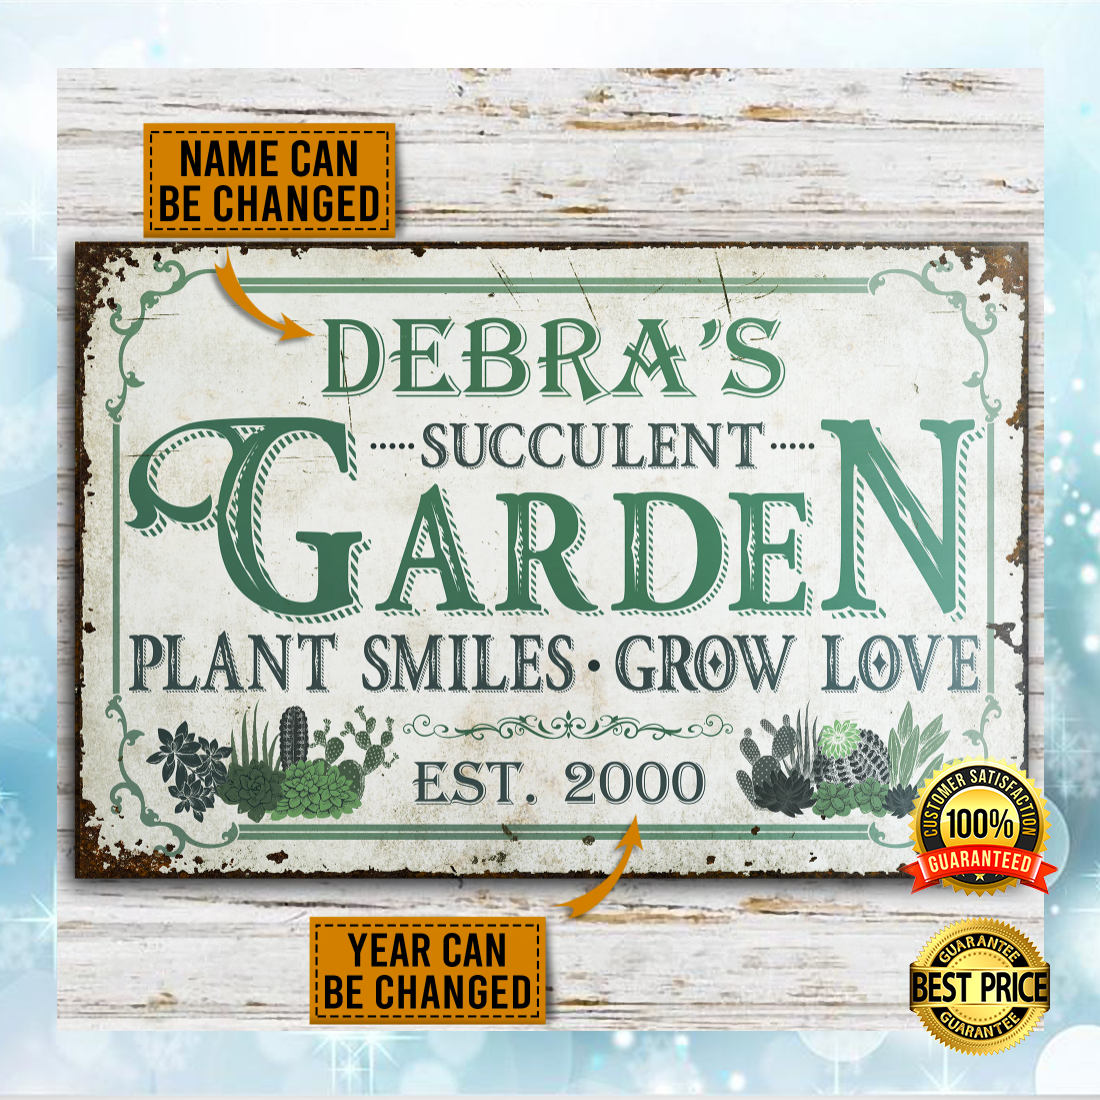 Personalized succulent garden plant smiles grow love poster 5